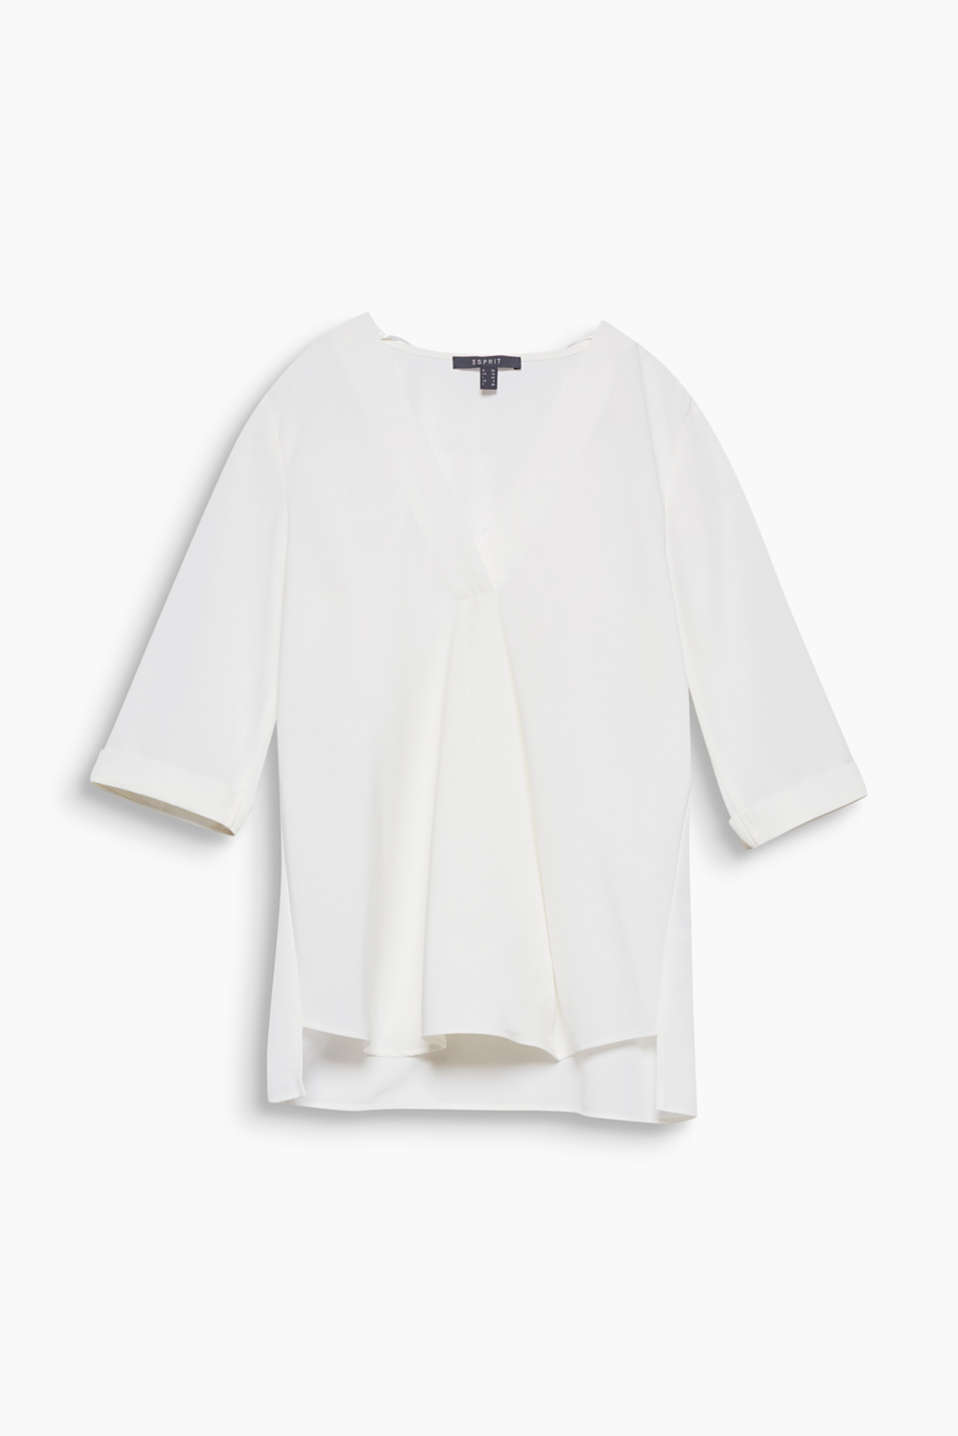 Casual and chic: this laid-back, wide cut blouse boasts an attached wrap-over effect and three-quarter length sleeves.